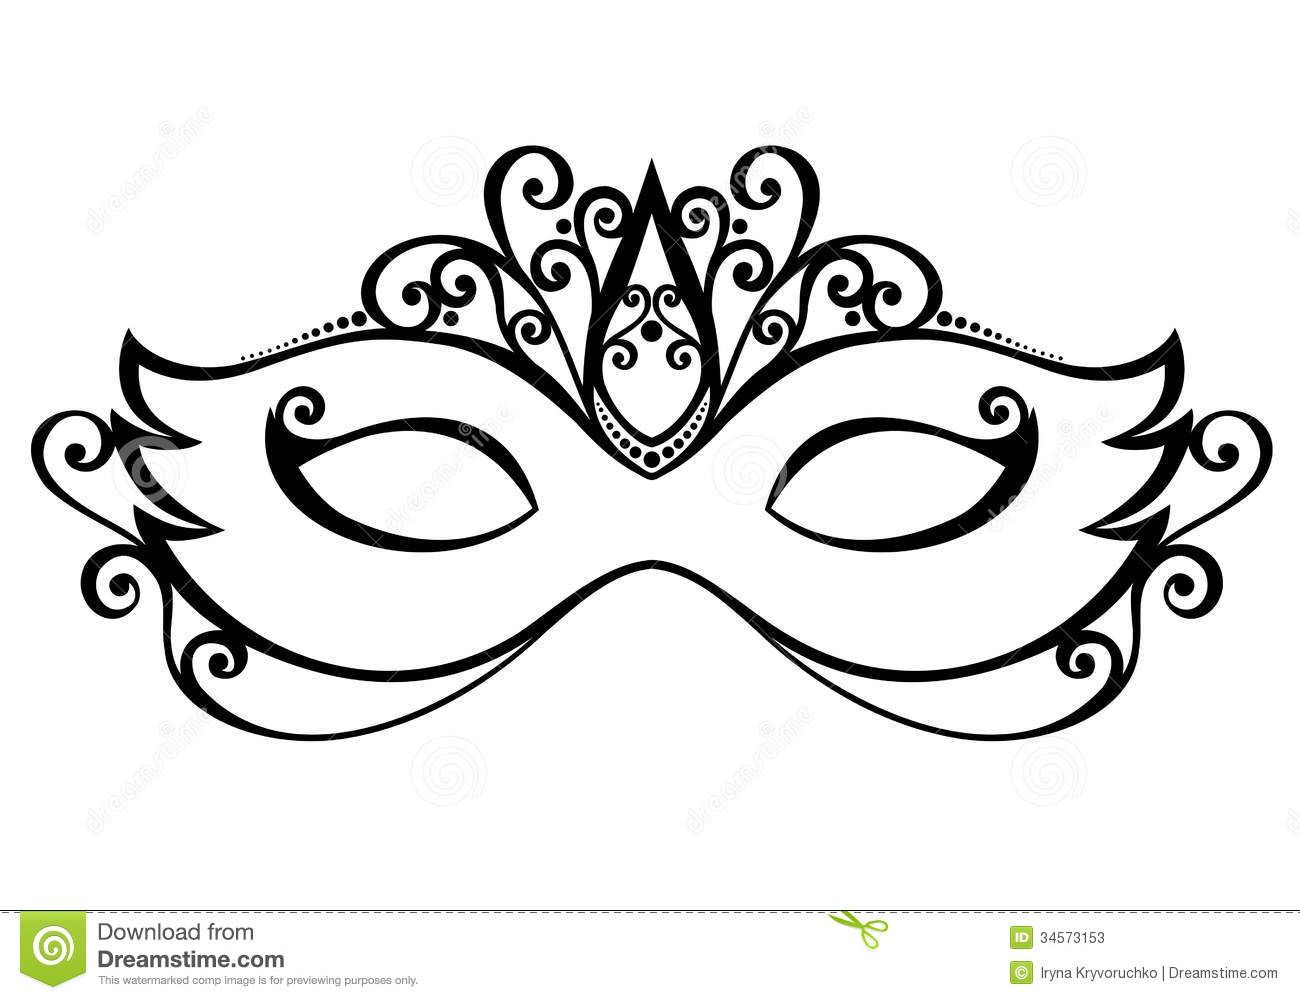 Uncategorized Masquerade Mask Templates use the form below to delete this masquerade mask clip art image from our index